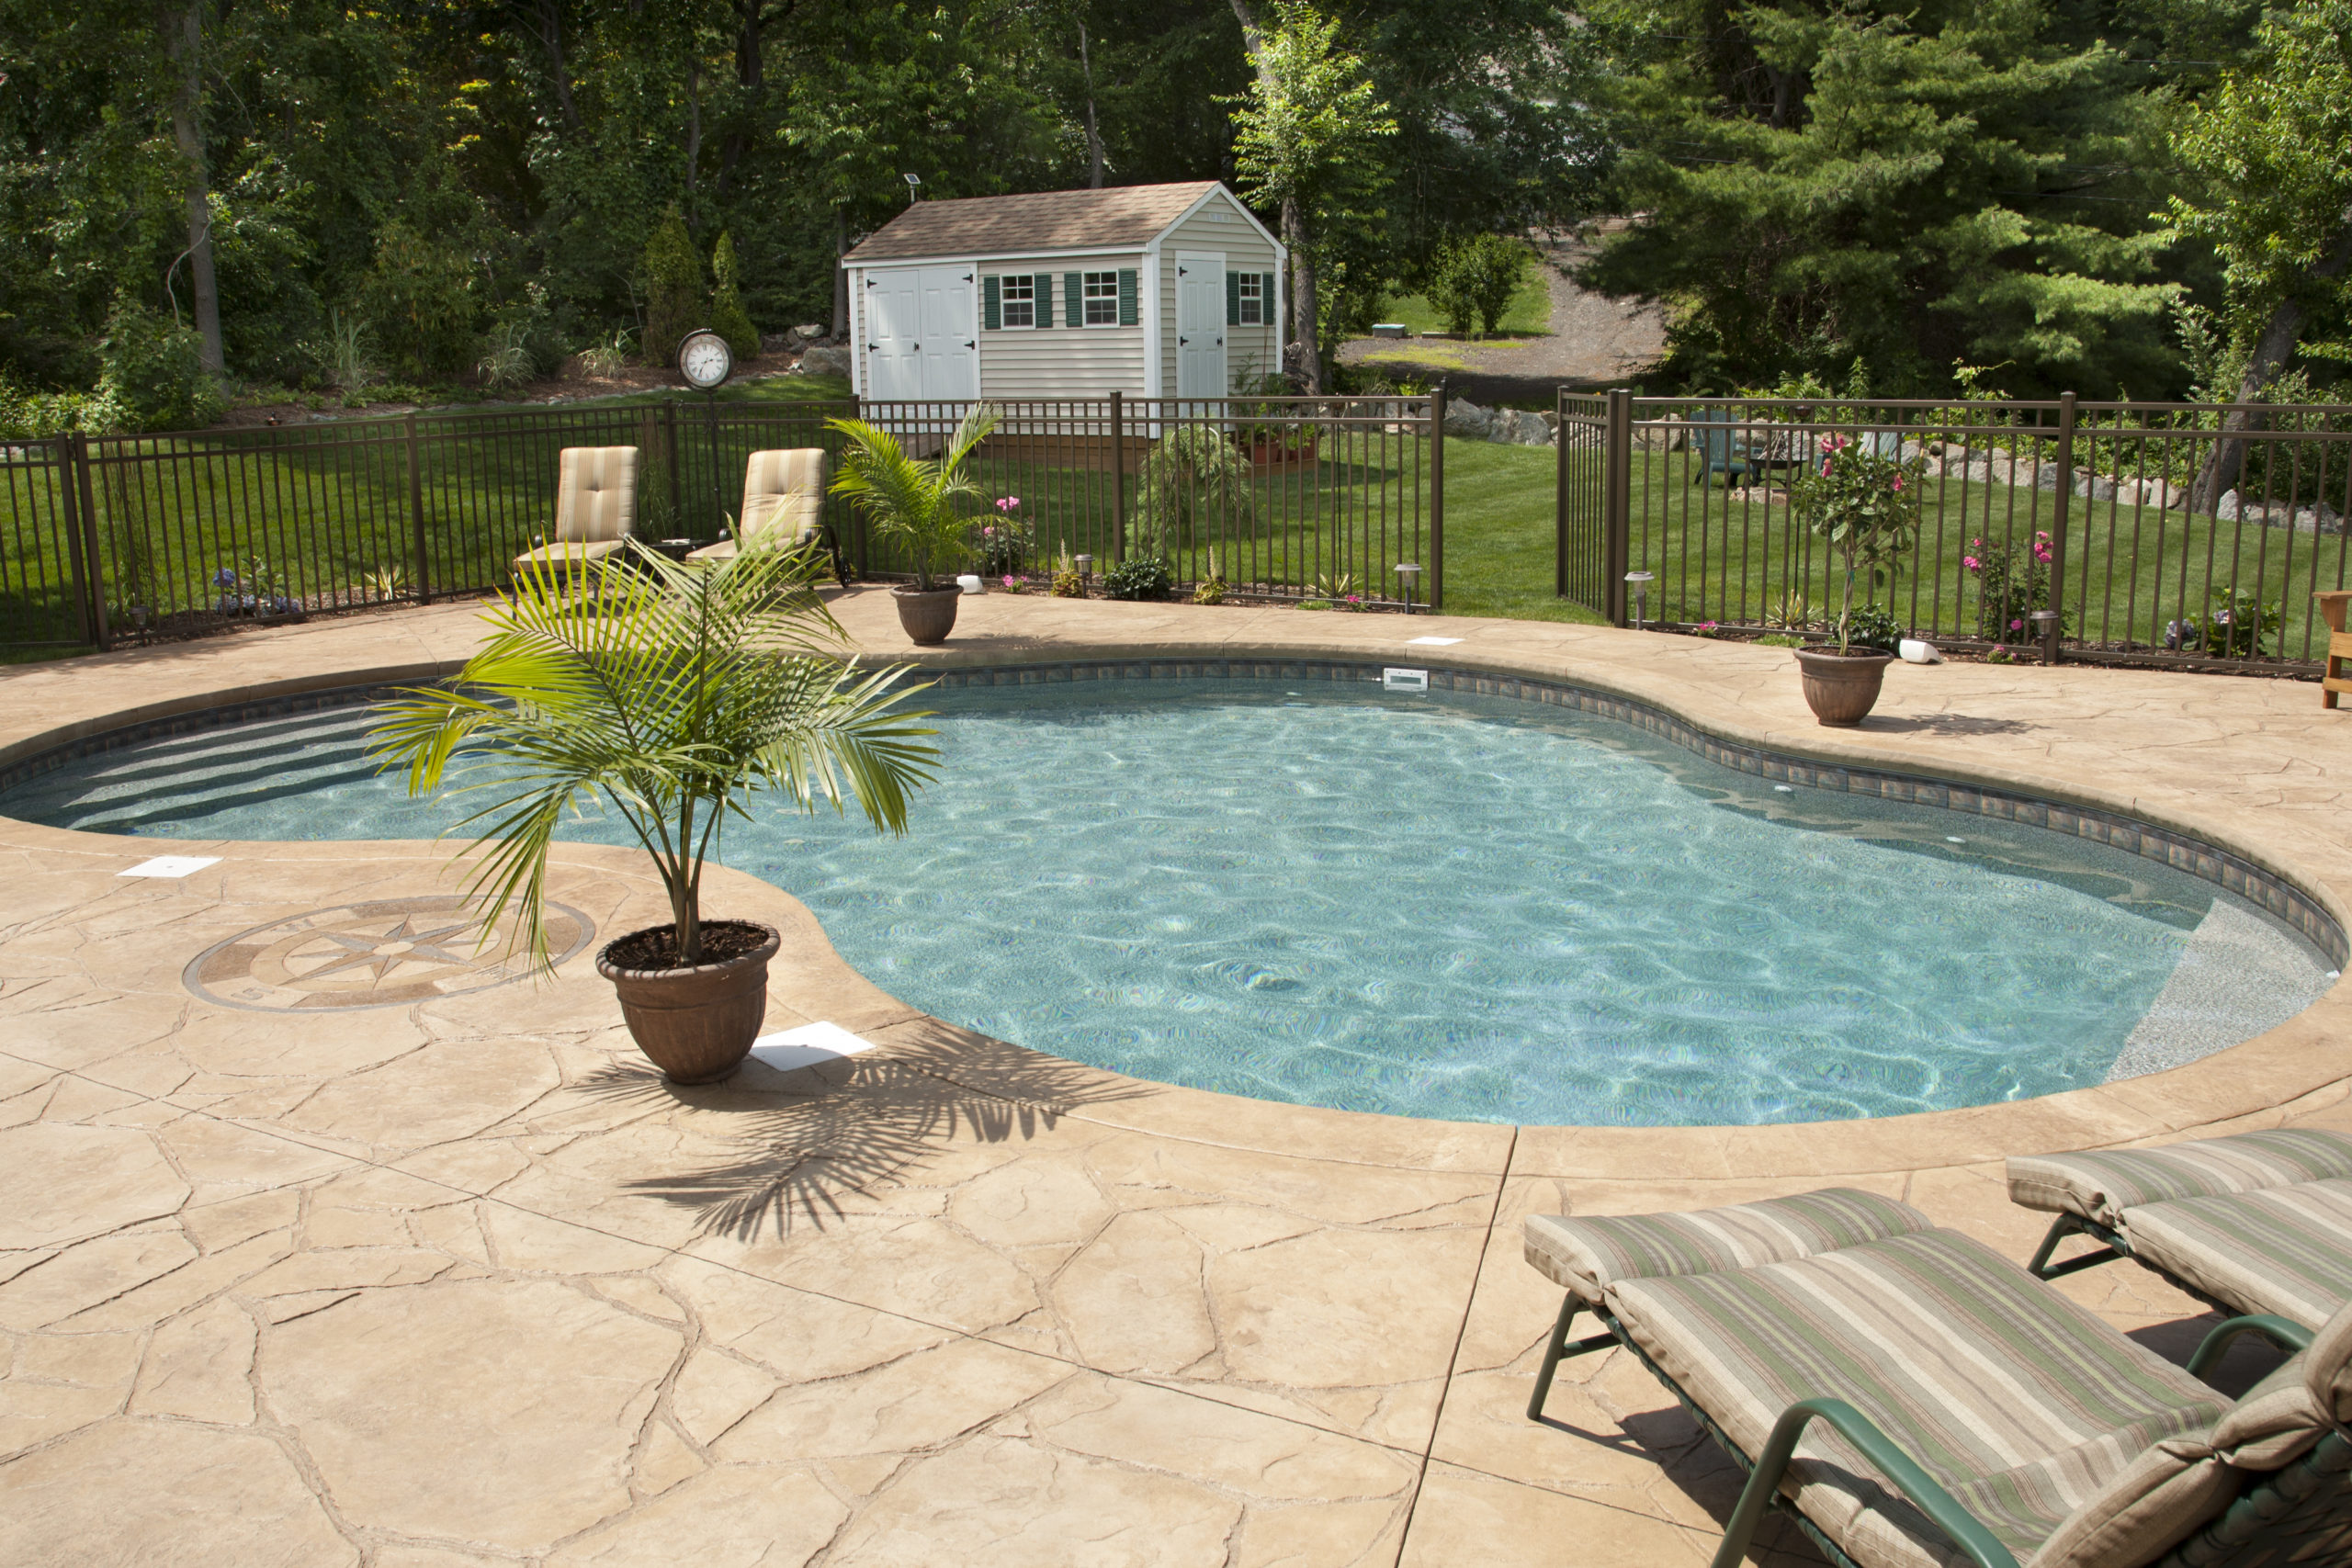 This is an image of a stamped concrete pool deck on a residential property.